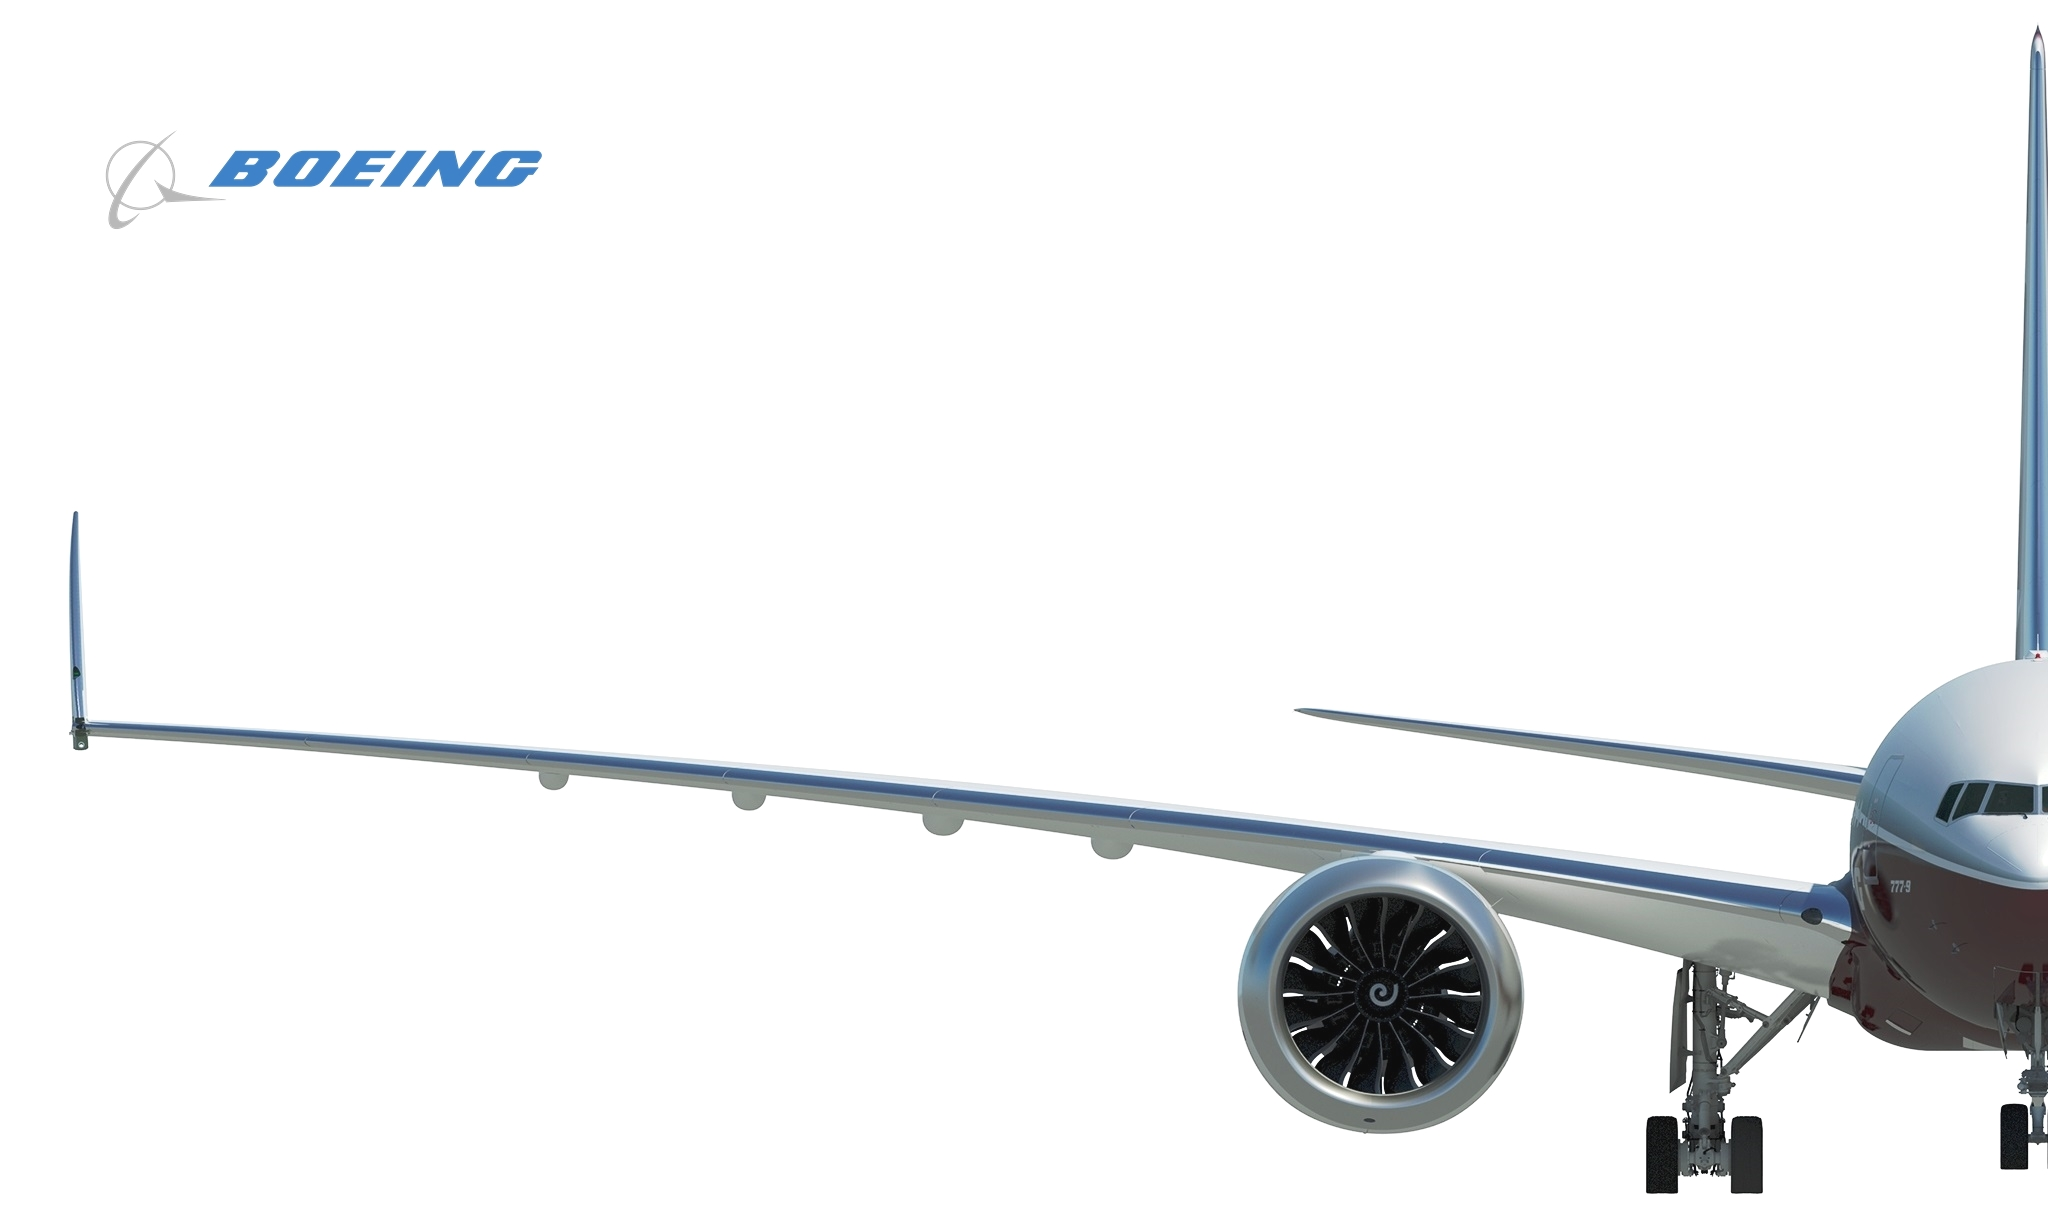 AW-Boeing 777X